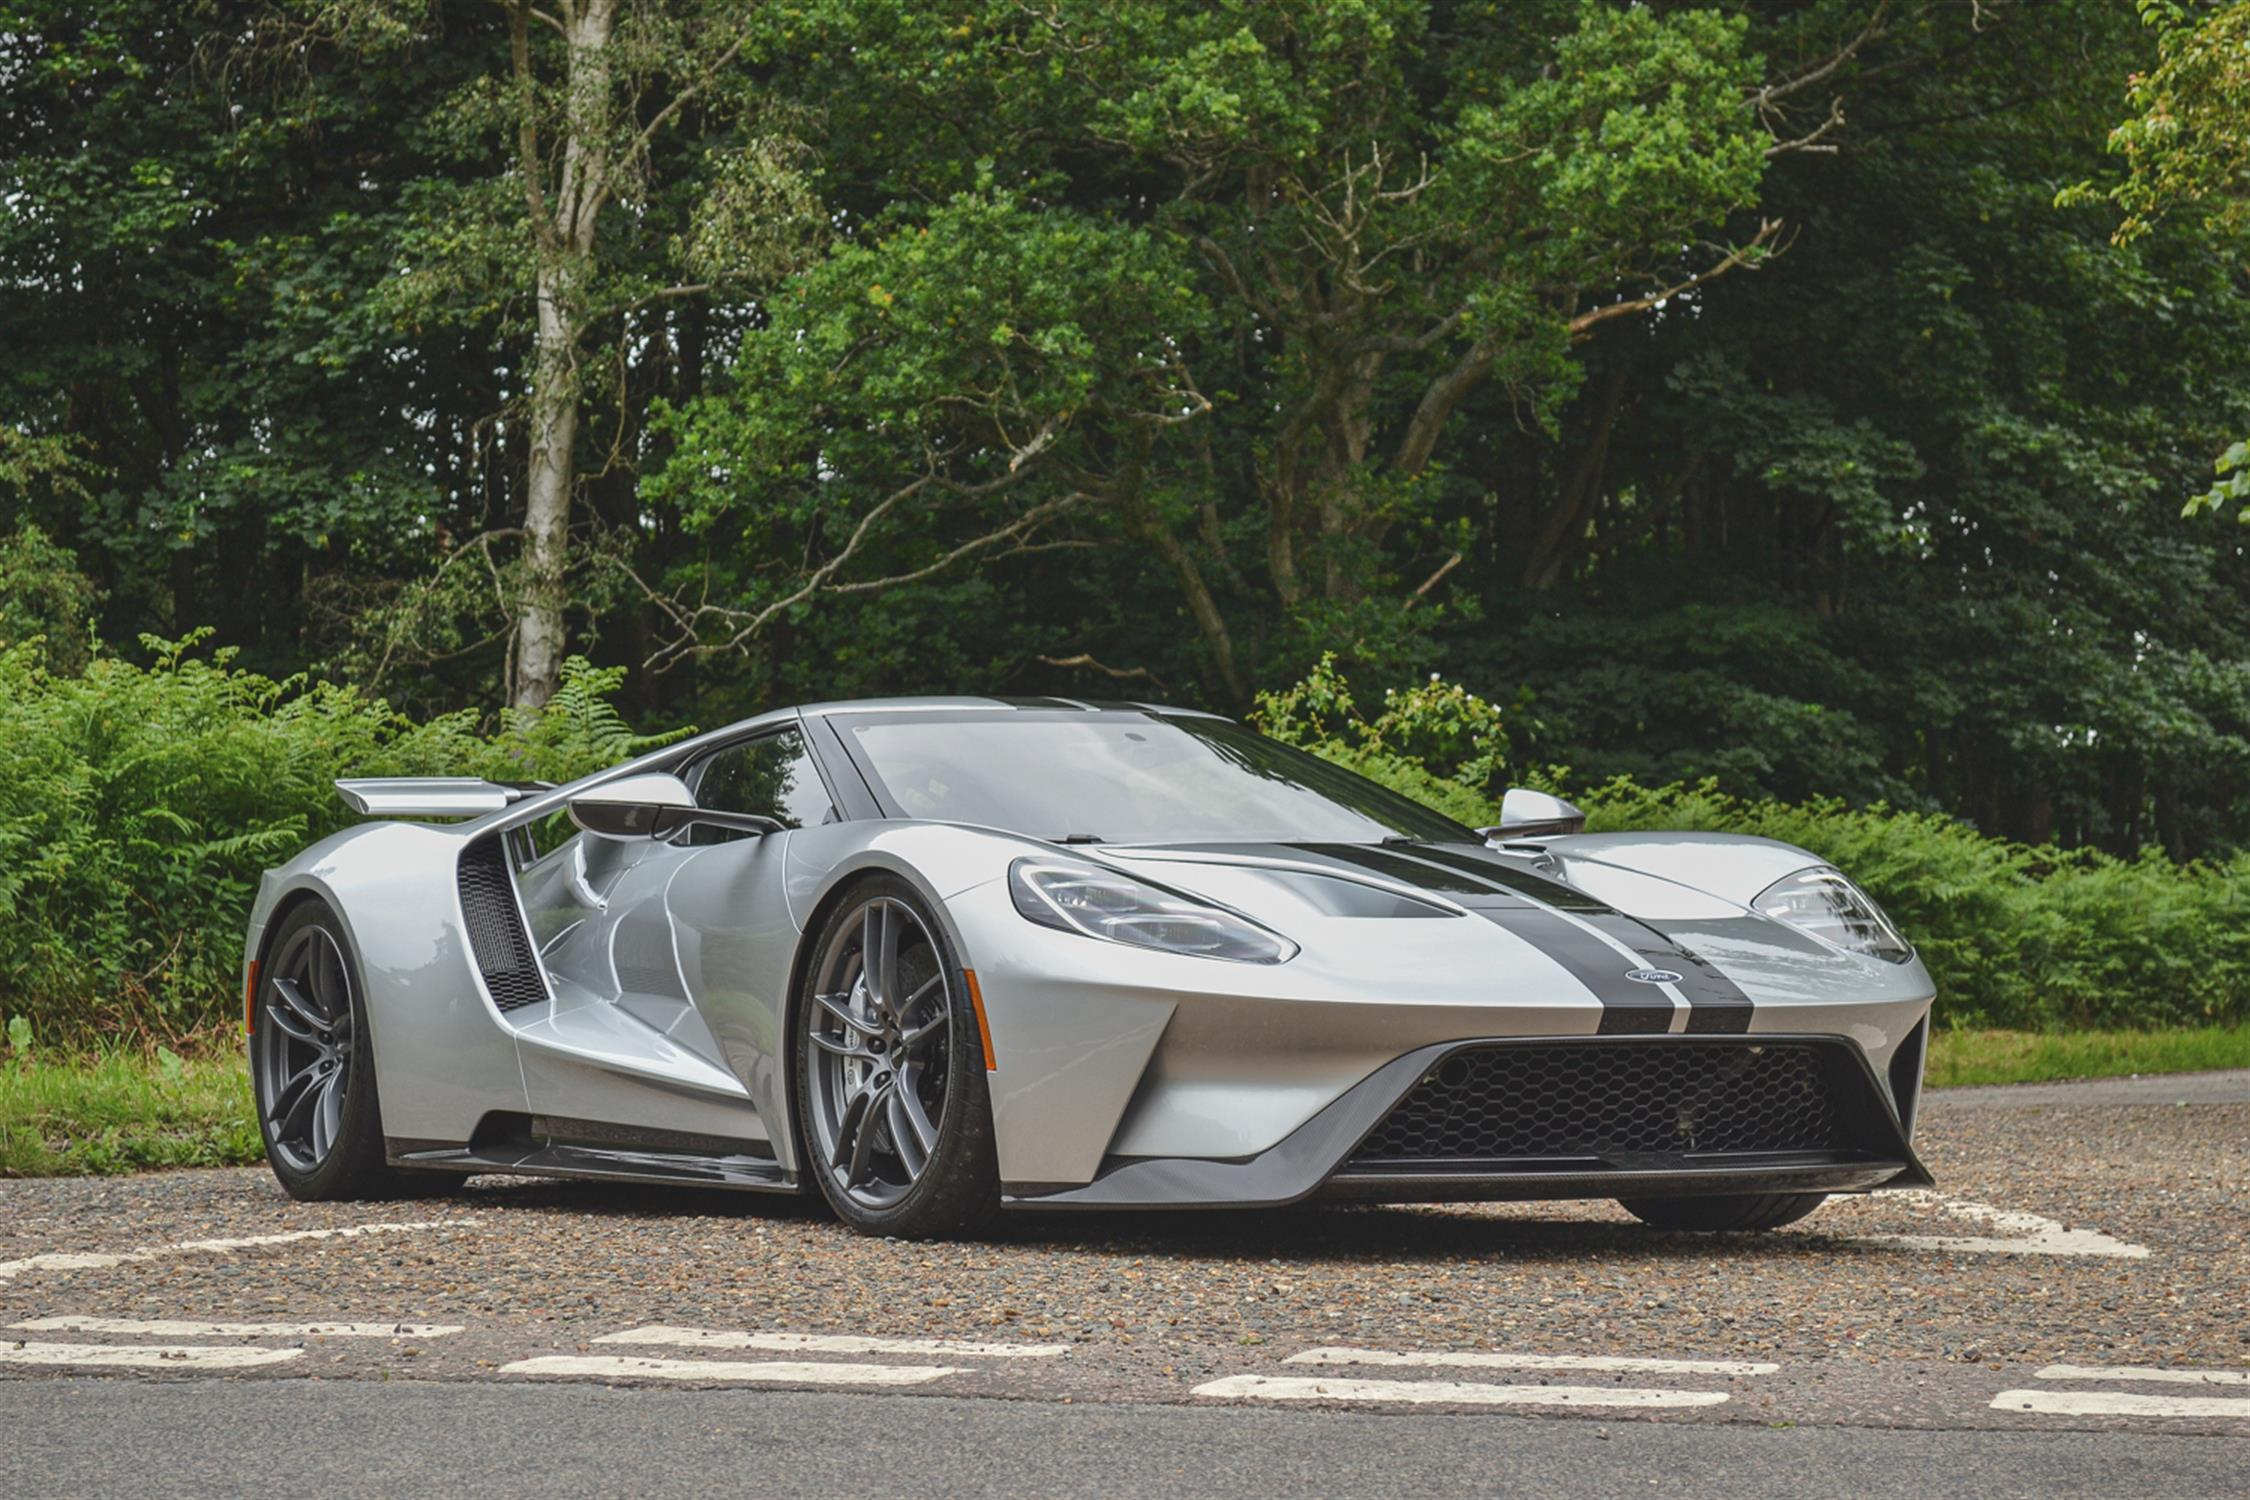 2018 Ford GT - Image 5 of 20